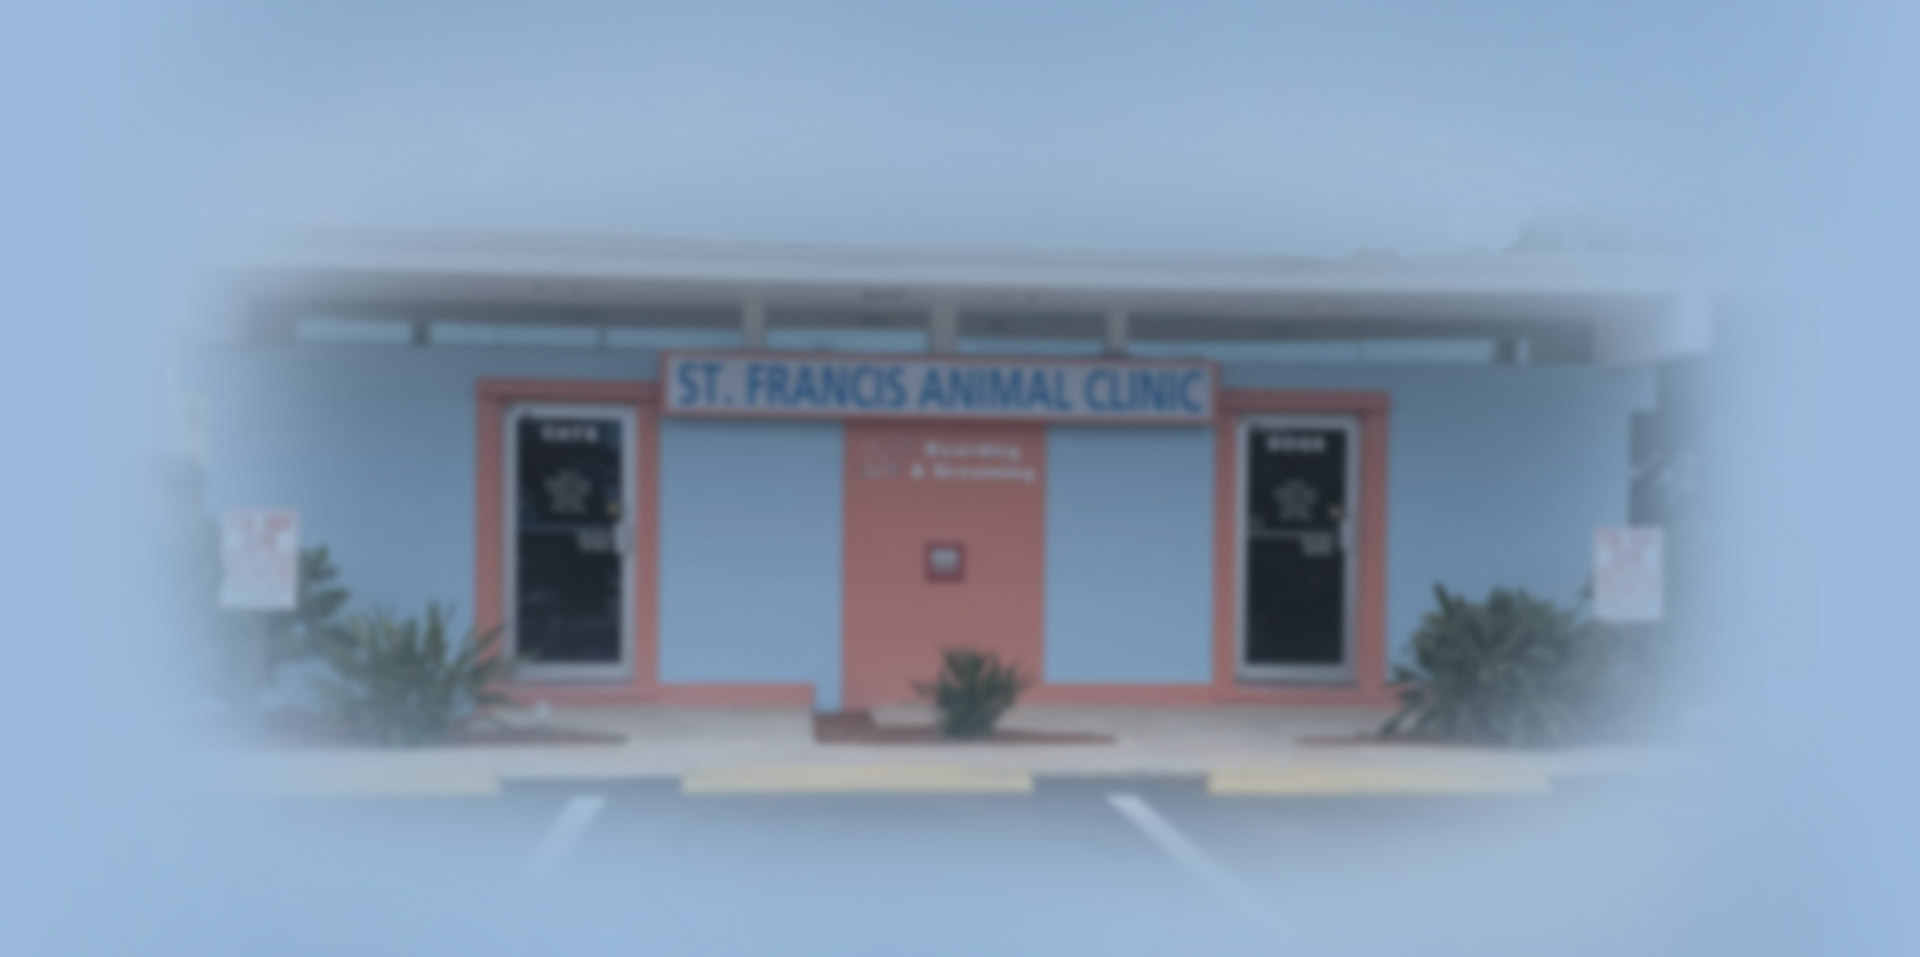 Our Clinic | St. Francis Animal Clinic